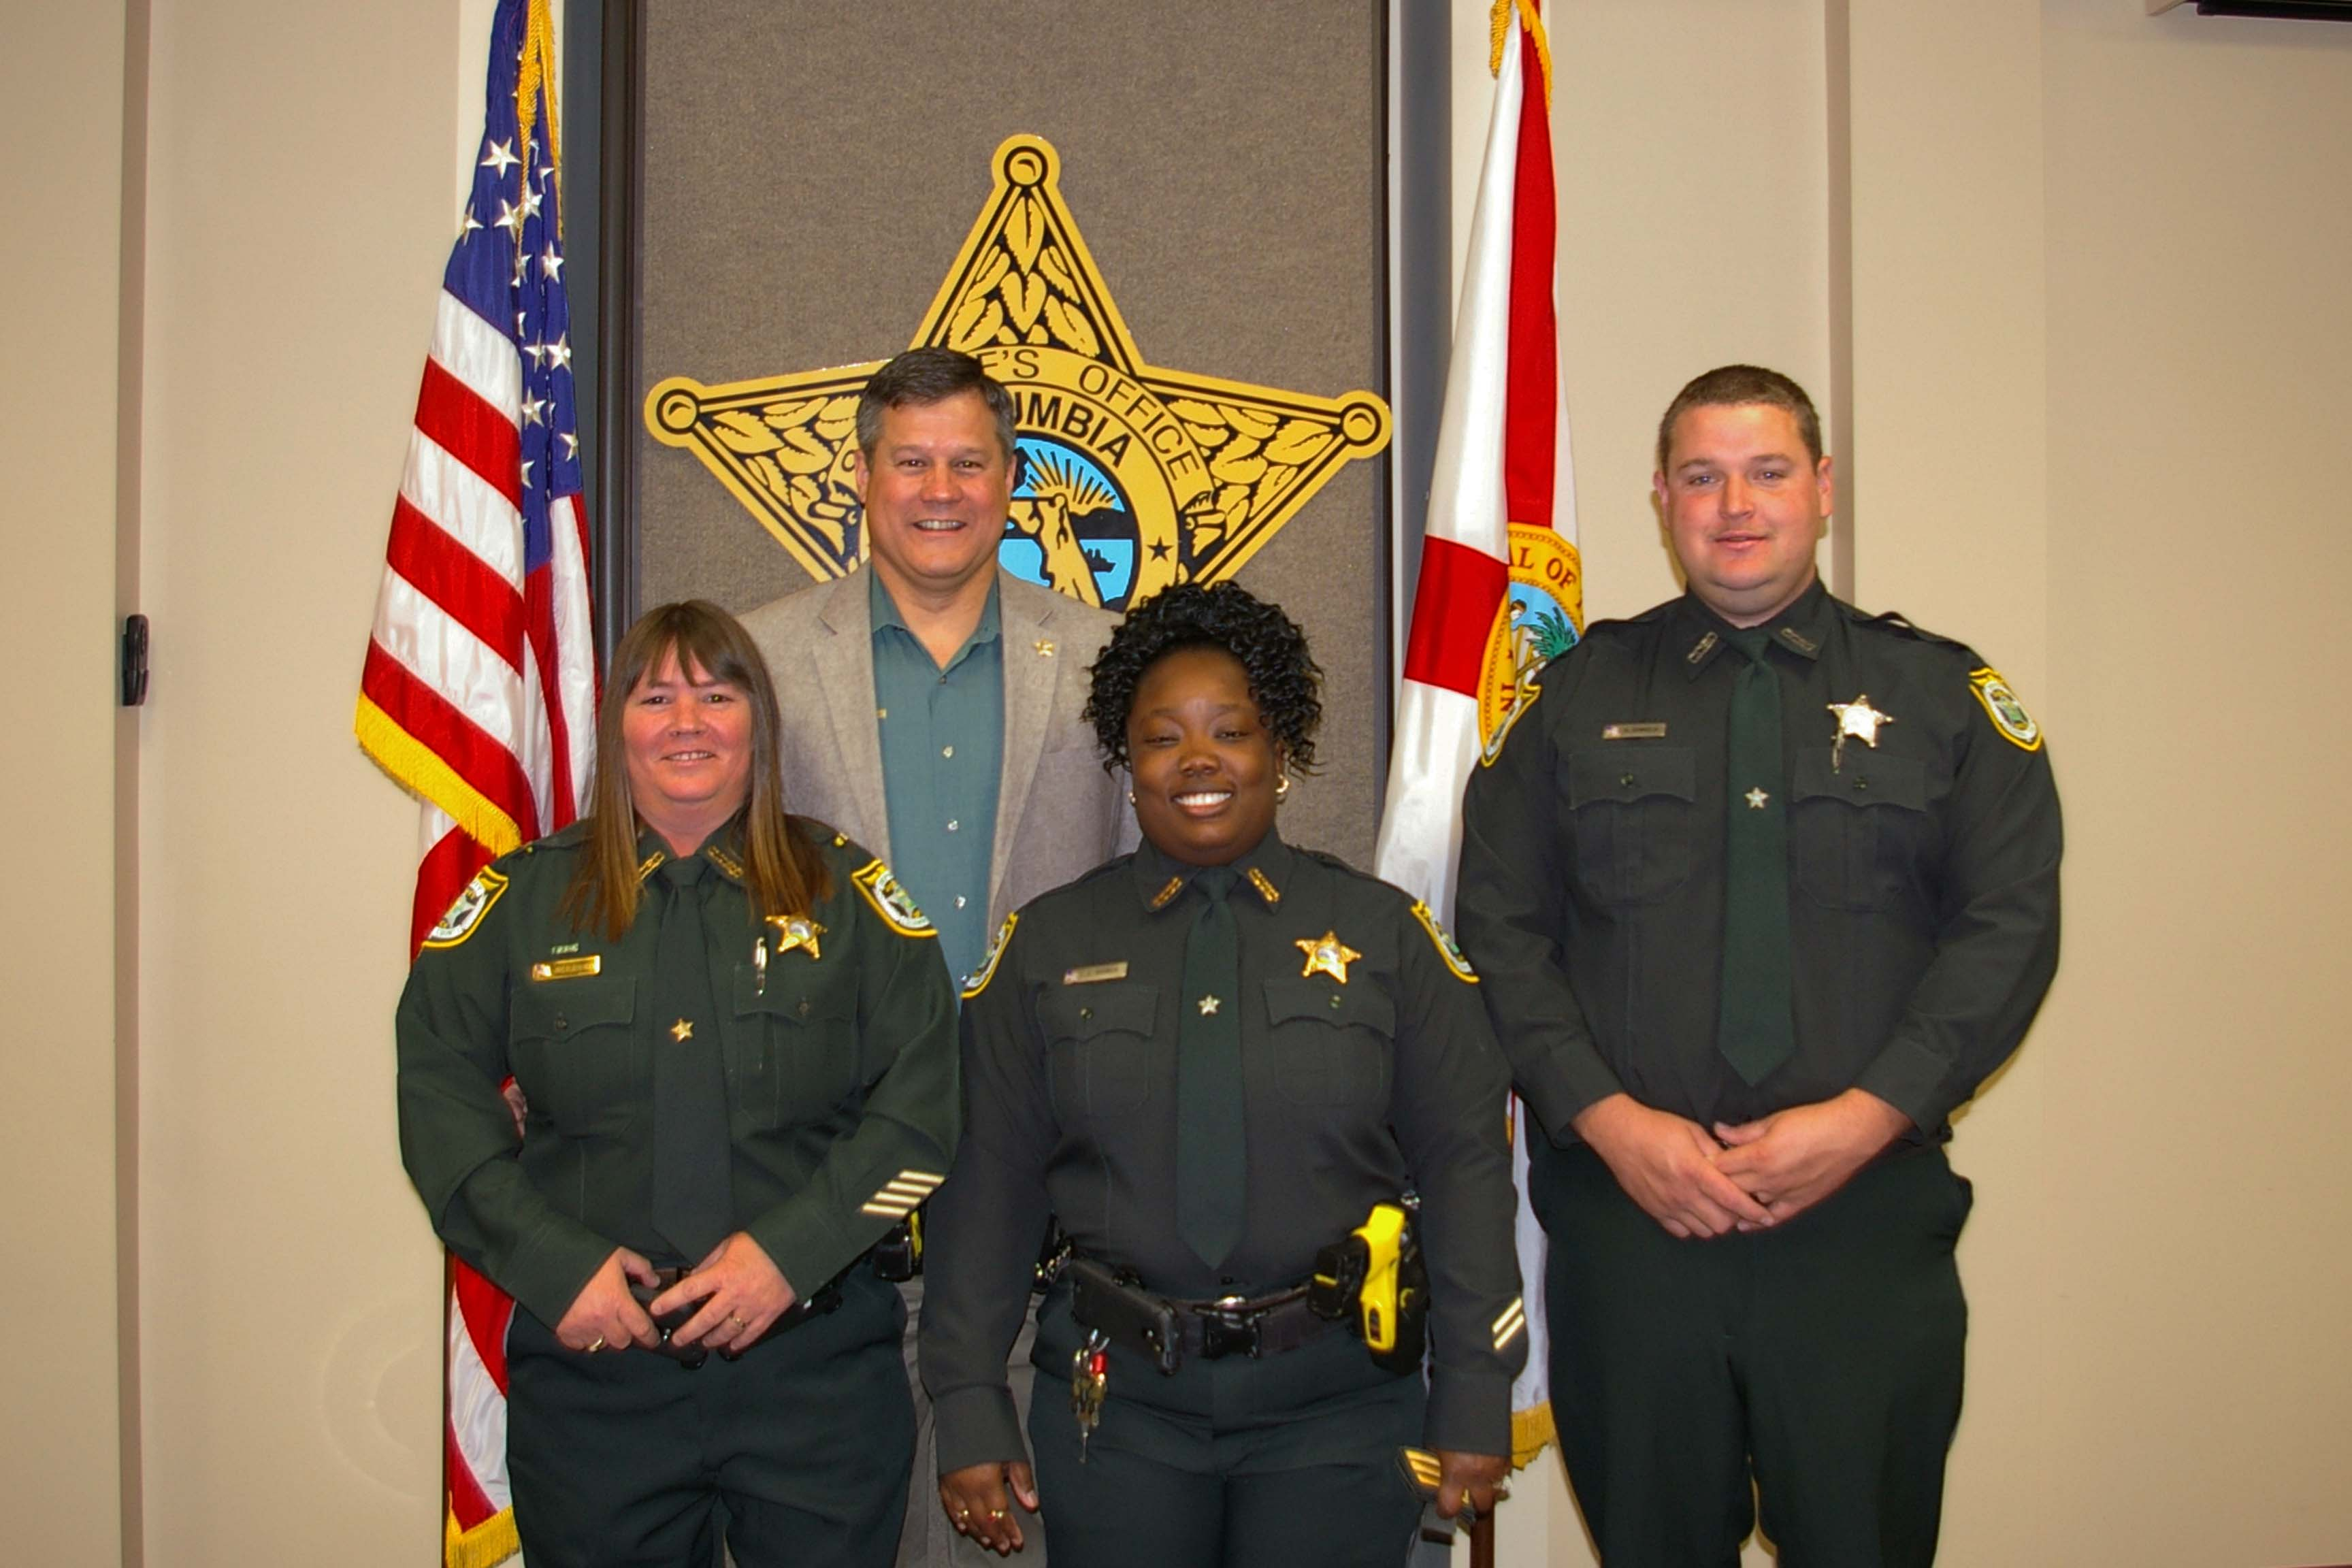 Sheriff Mark Hunter with Lt. Holly Castagna, Sgt. Tocarra Gainer, and Cpl. Ronnie Daniels